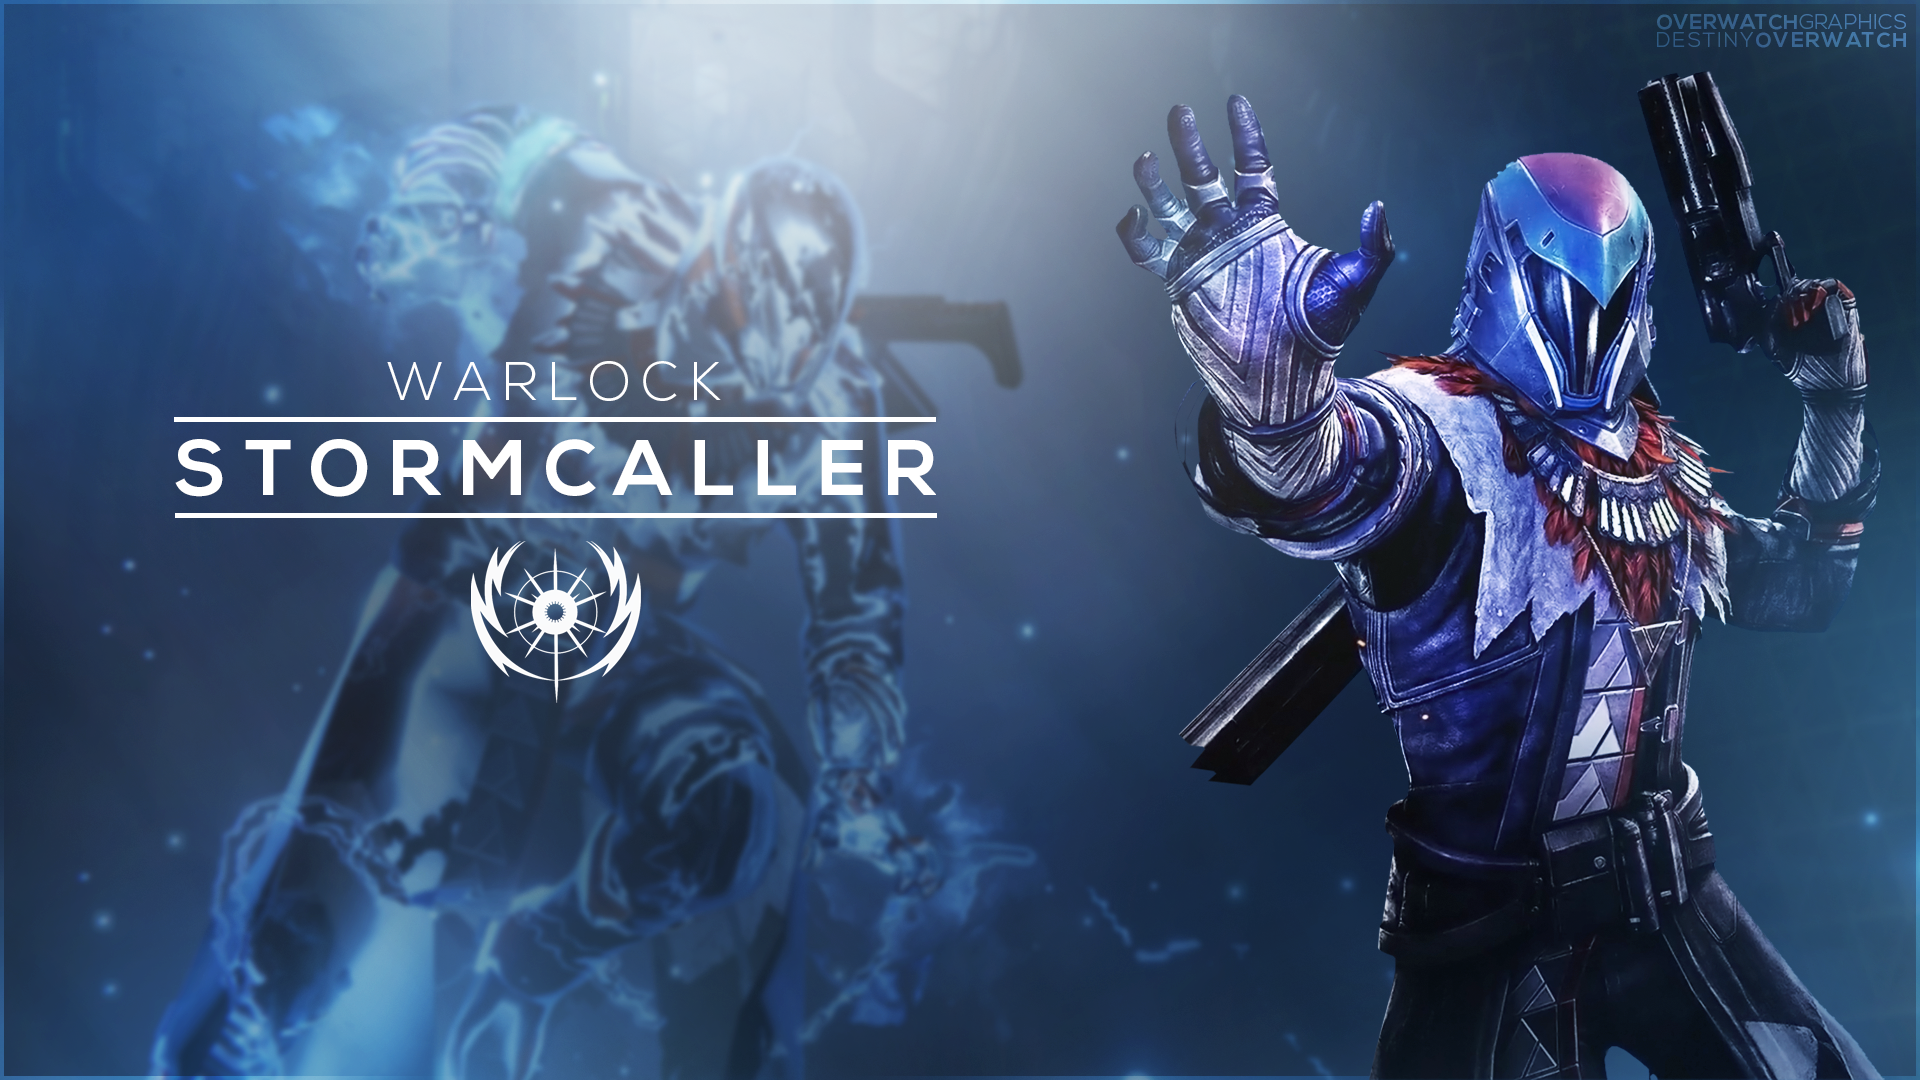 Destiny the Game   Stormcaller Phone Wallpaper by OverwatchGraphics on 1920x1080